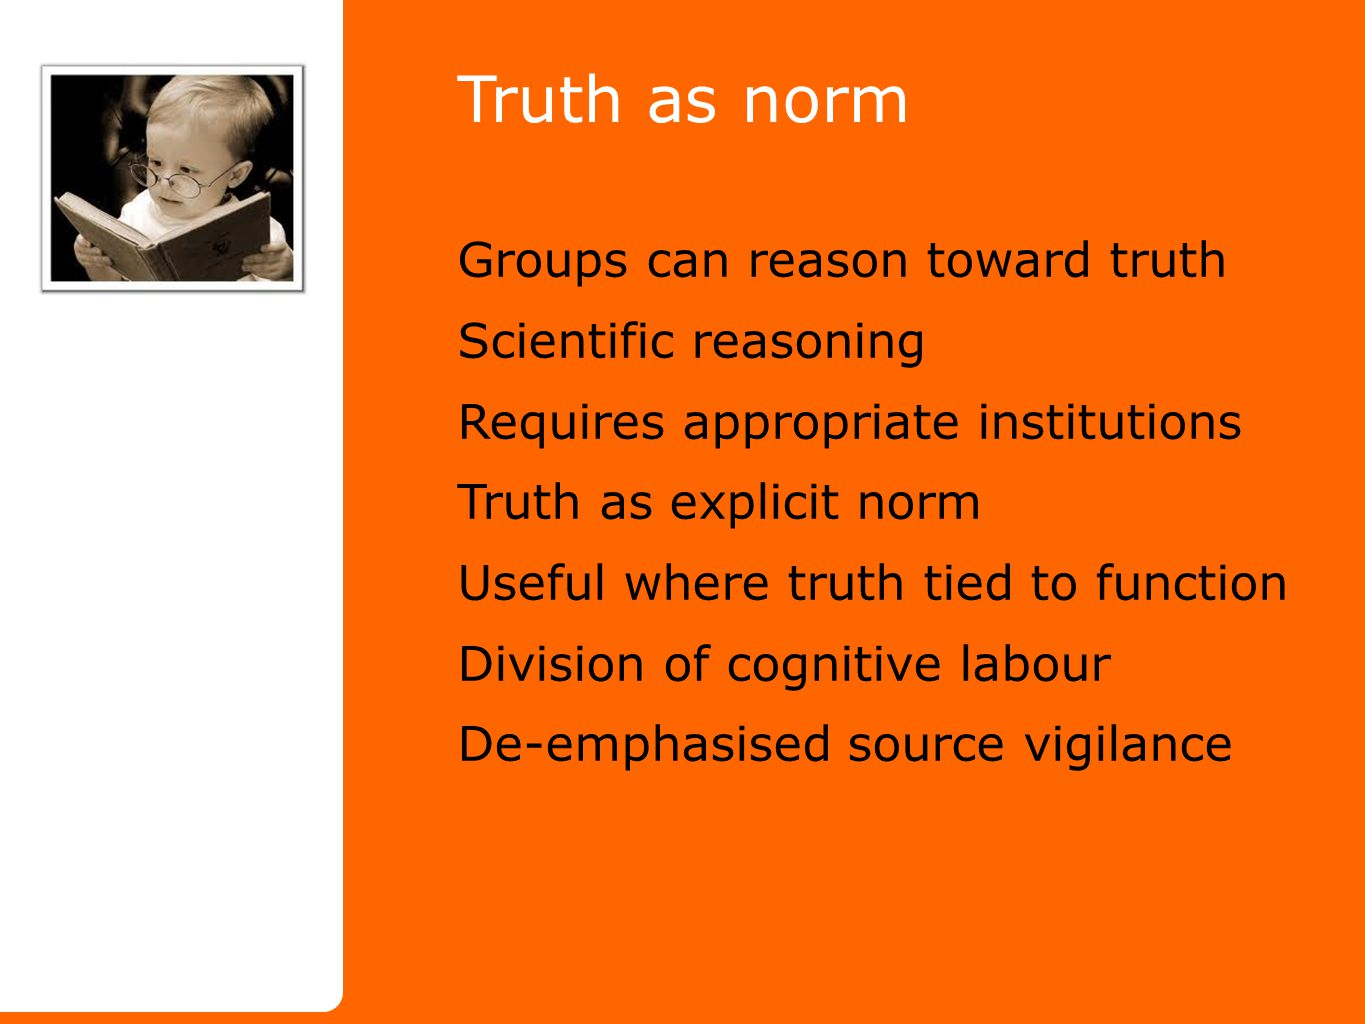 Truth as norm Groups can reason toward truth Scientific reasoning Requires appropriate institutions Truth as explicit norm Useful where truth tied to function Division of cognitive labour De-emphasised source vigilance